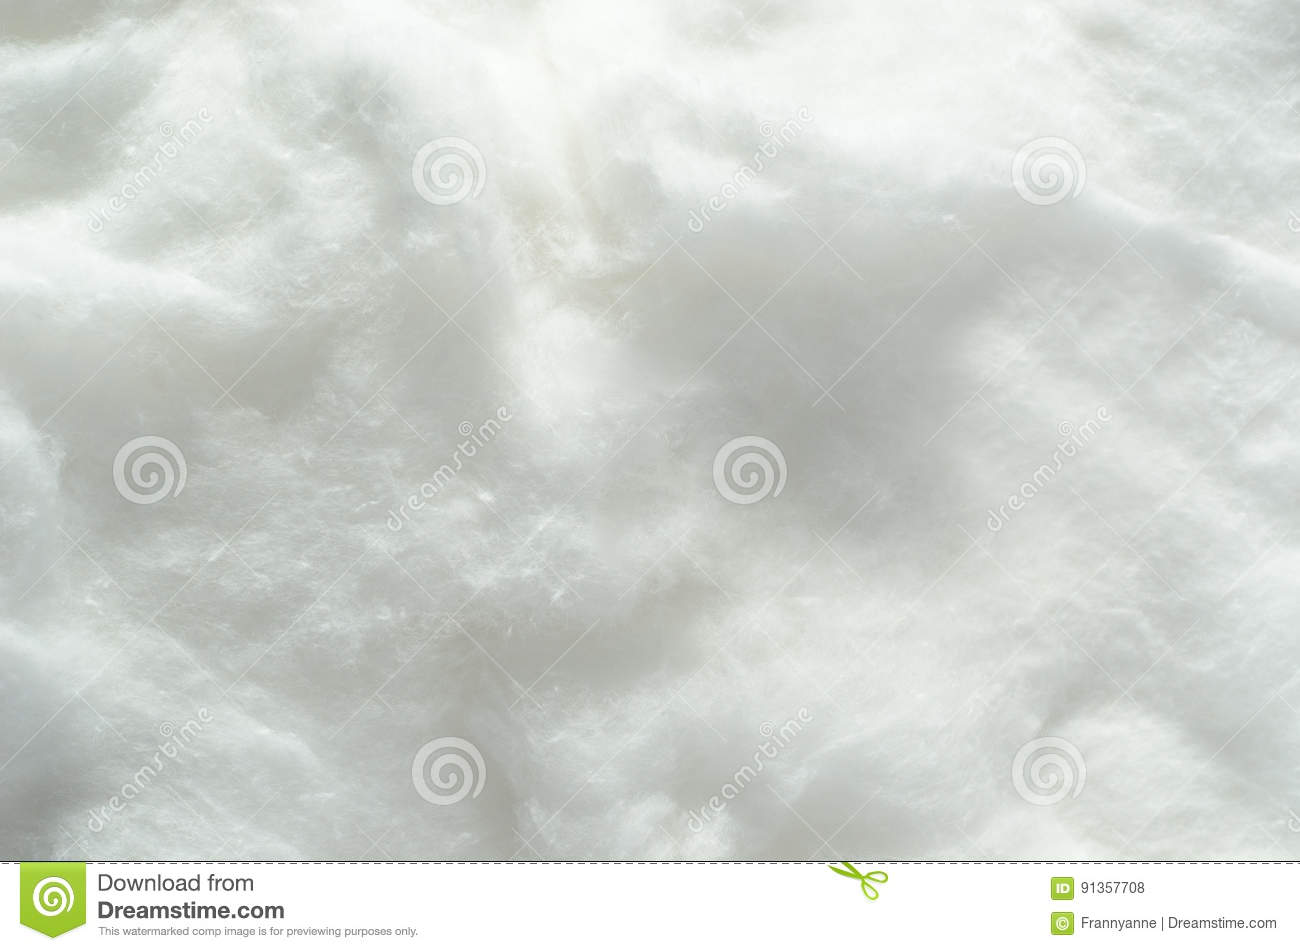 Soft White Cotton Wool Texture Background Stock Photo - Image ... for Soft White Cotton Texture  150ifm